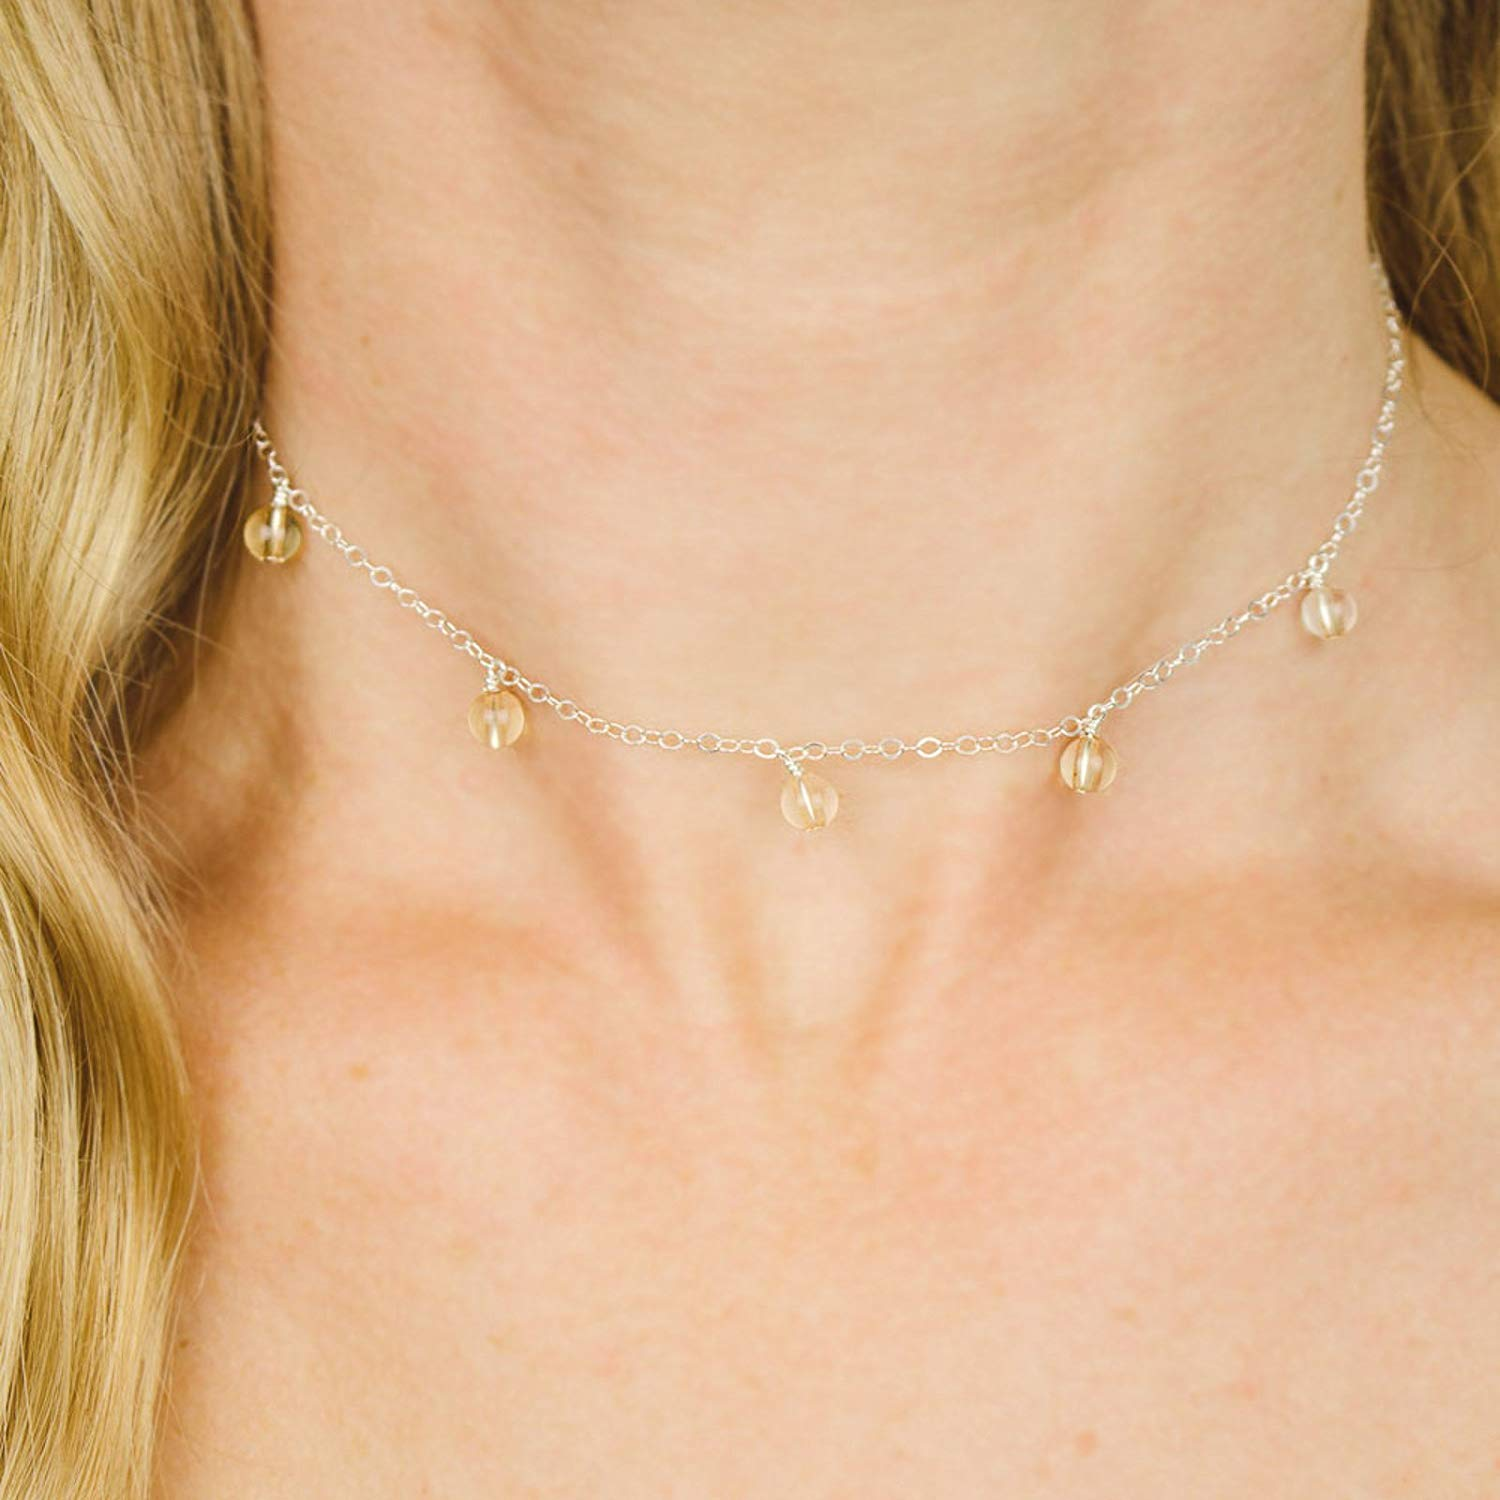 Citrine Beaded Chain Choker Necklace in Sterling Silver November Birthstone